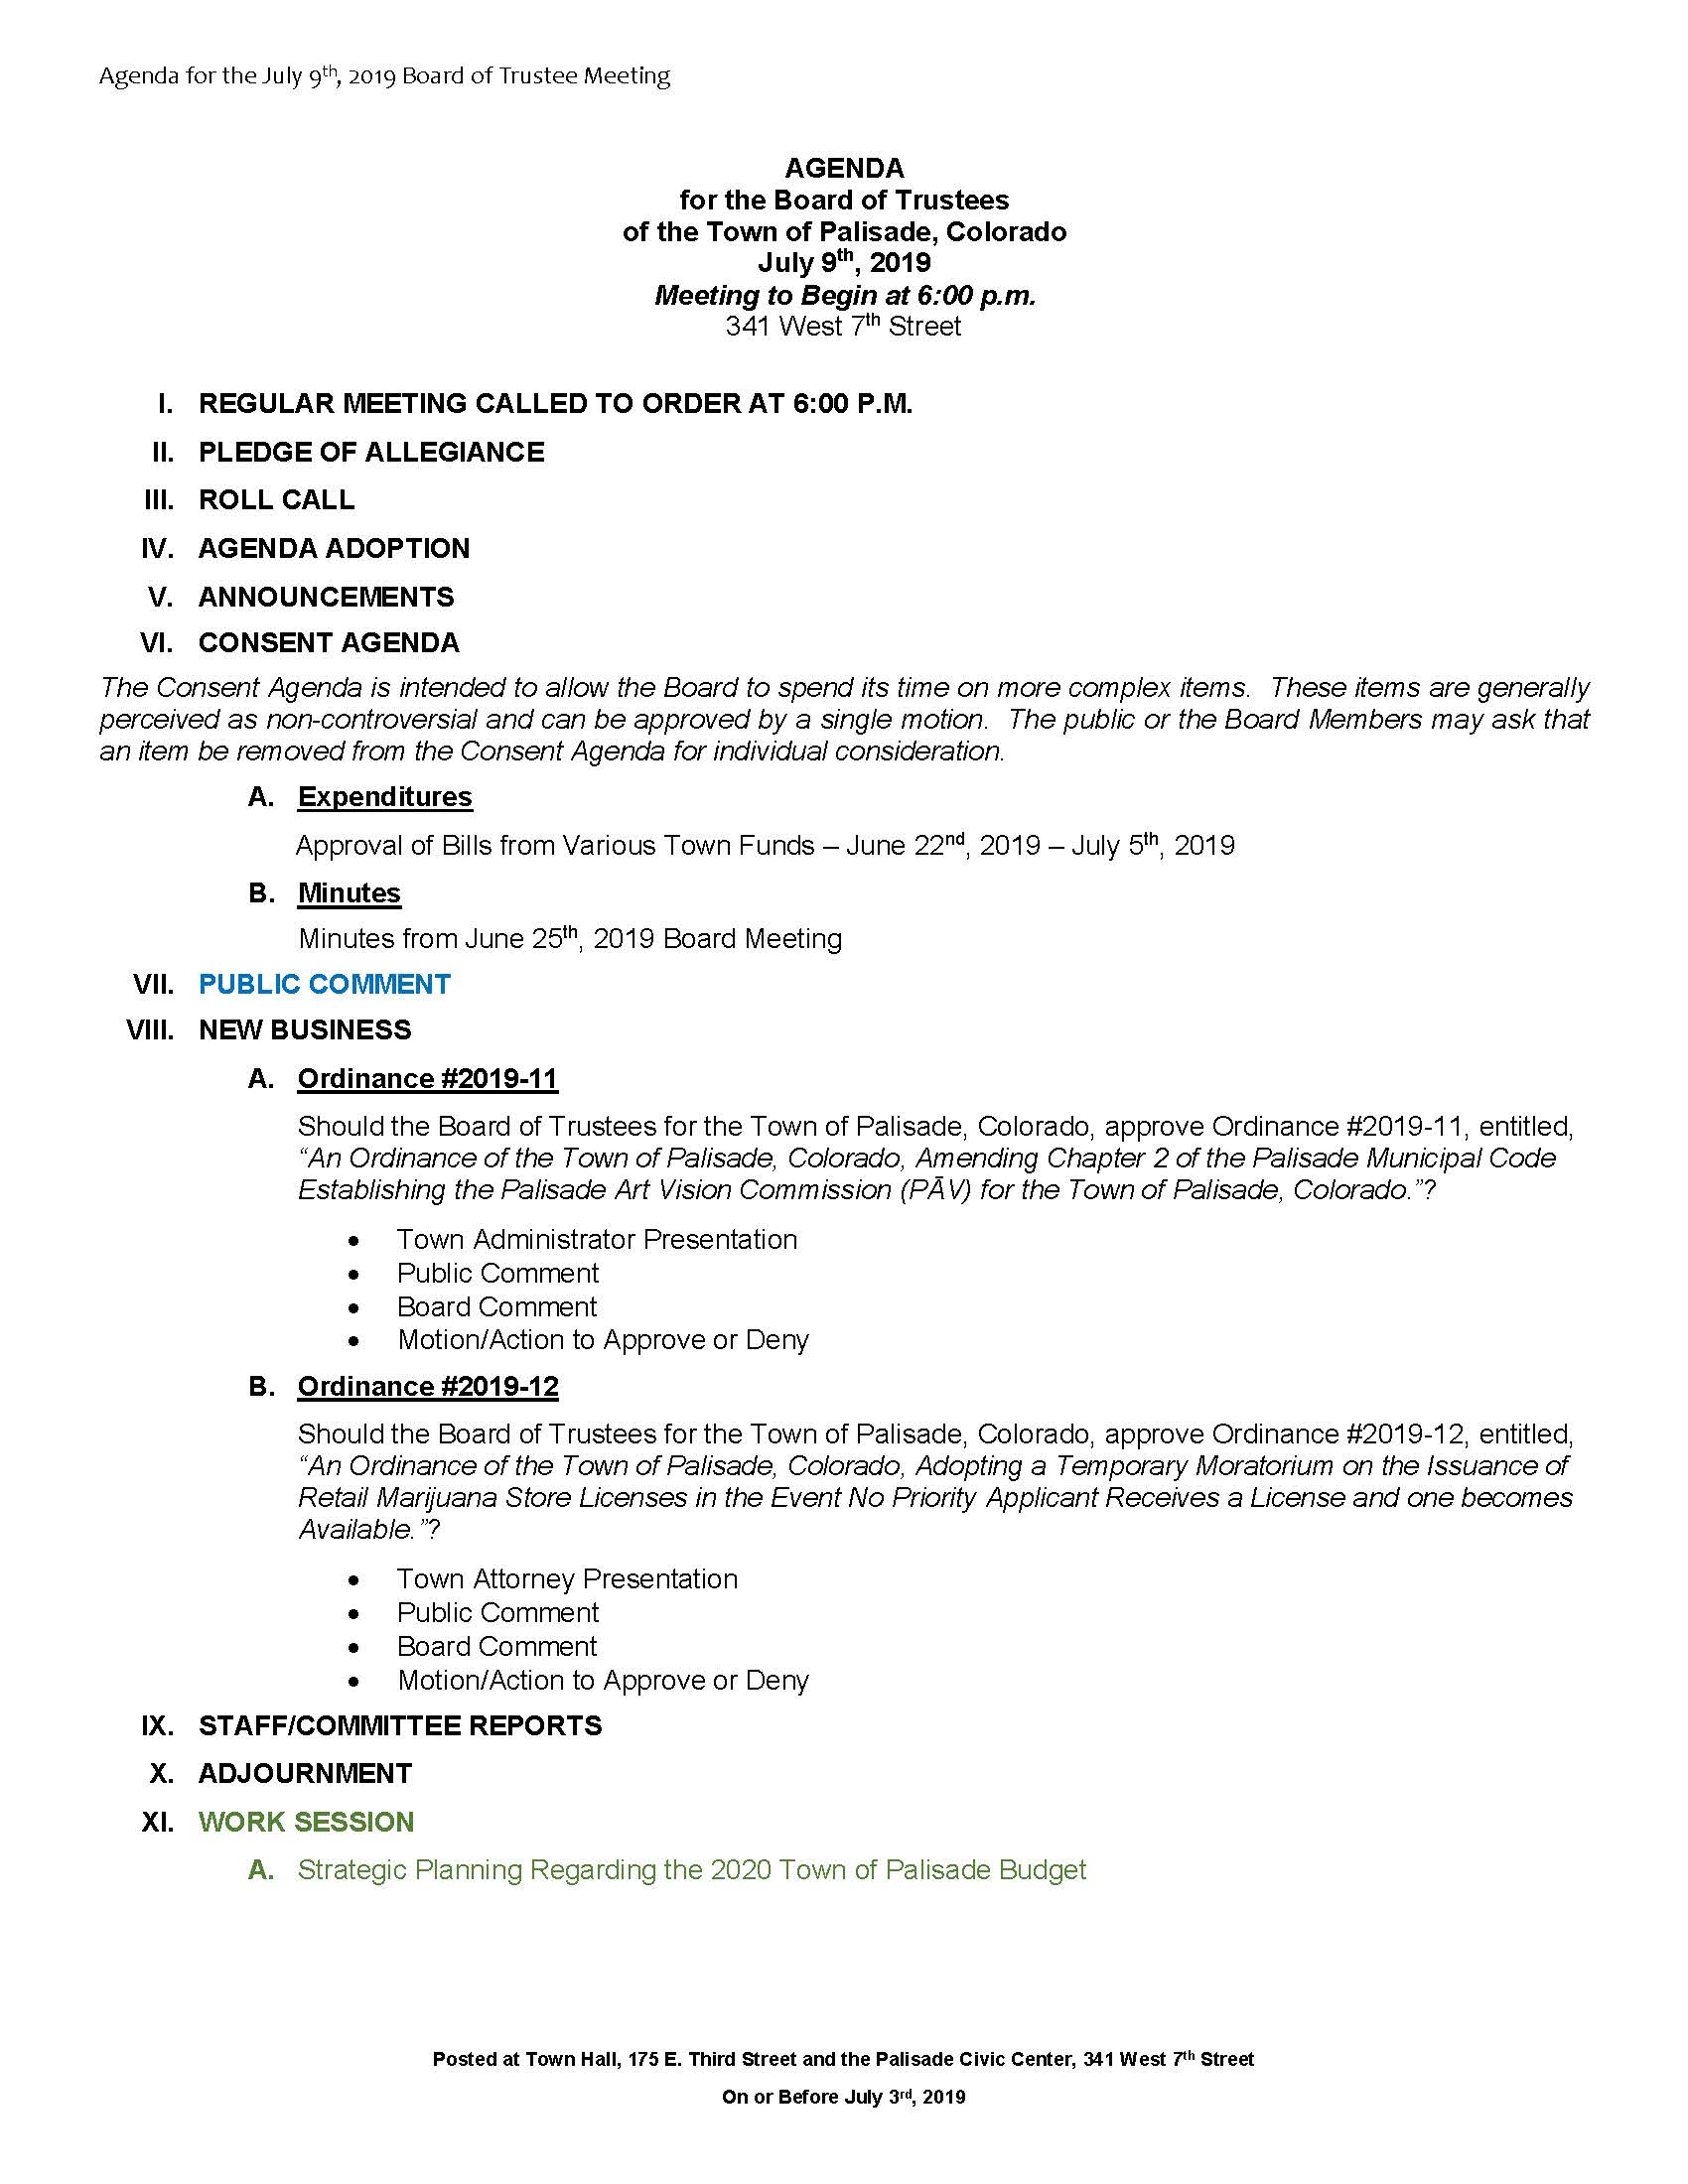 July 9th 2019 Board Meeting Agenda